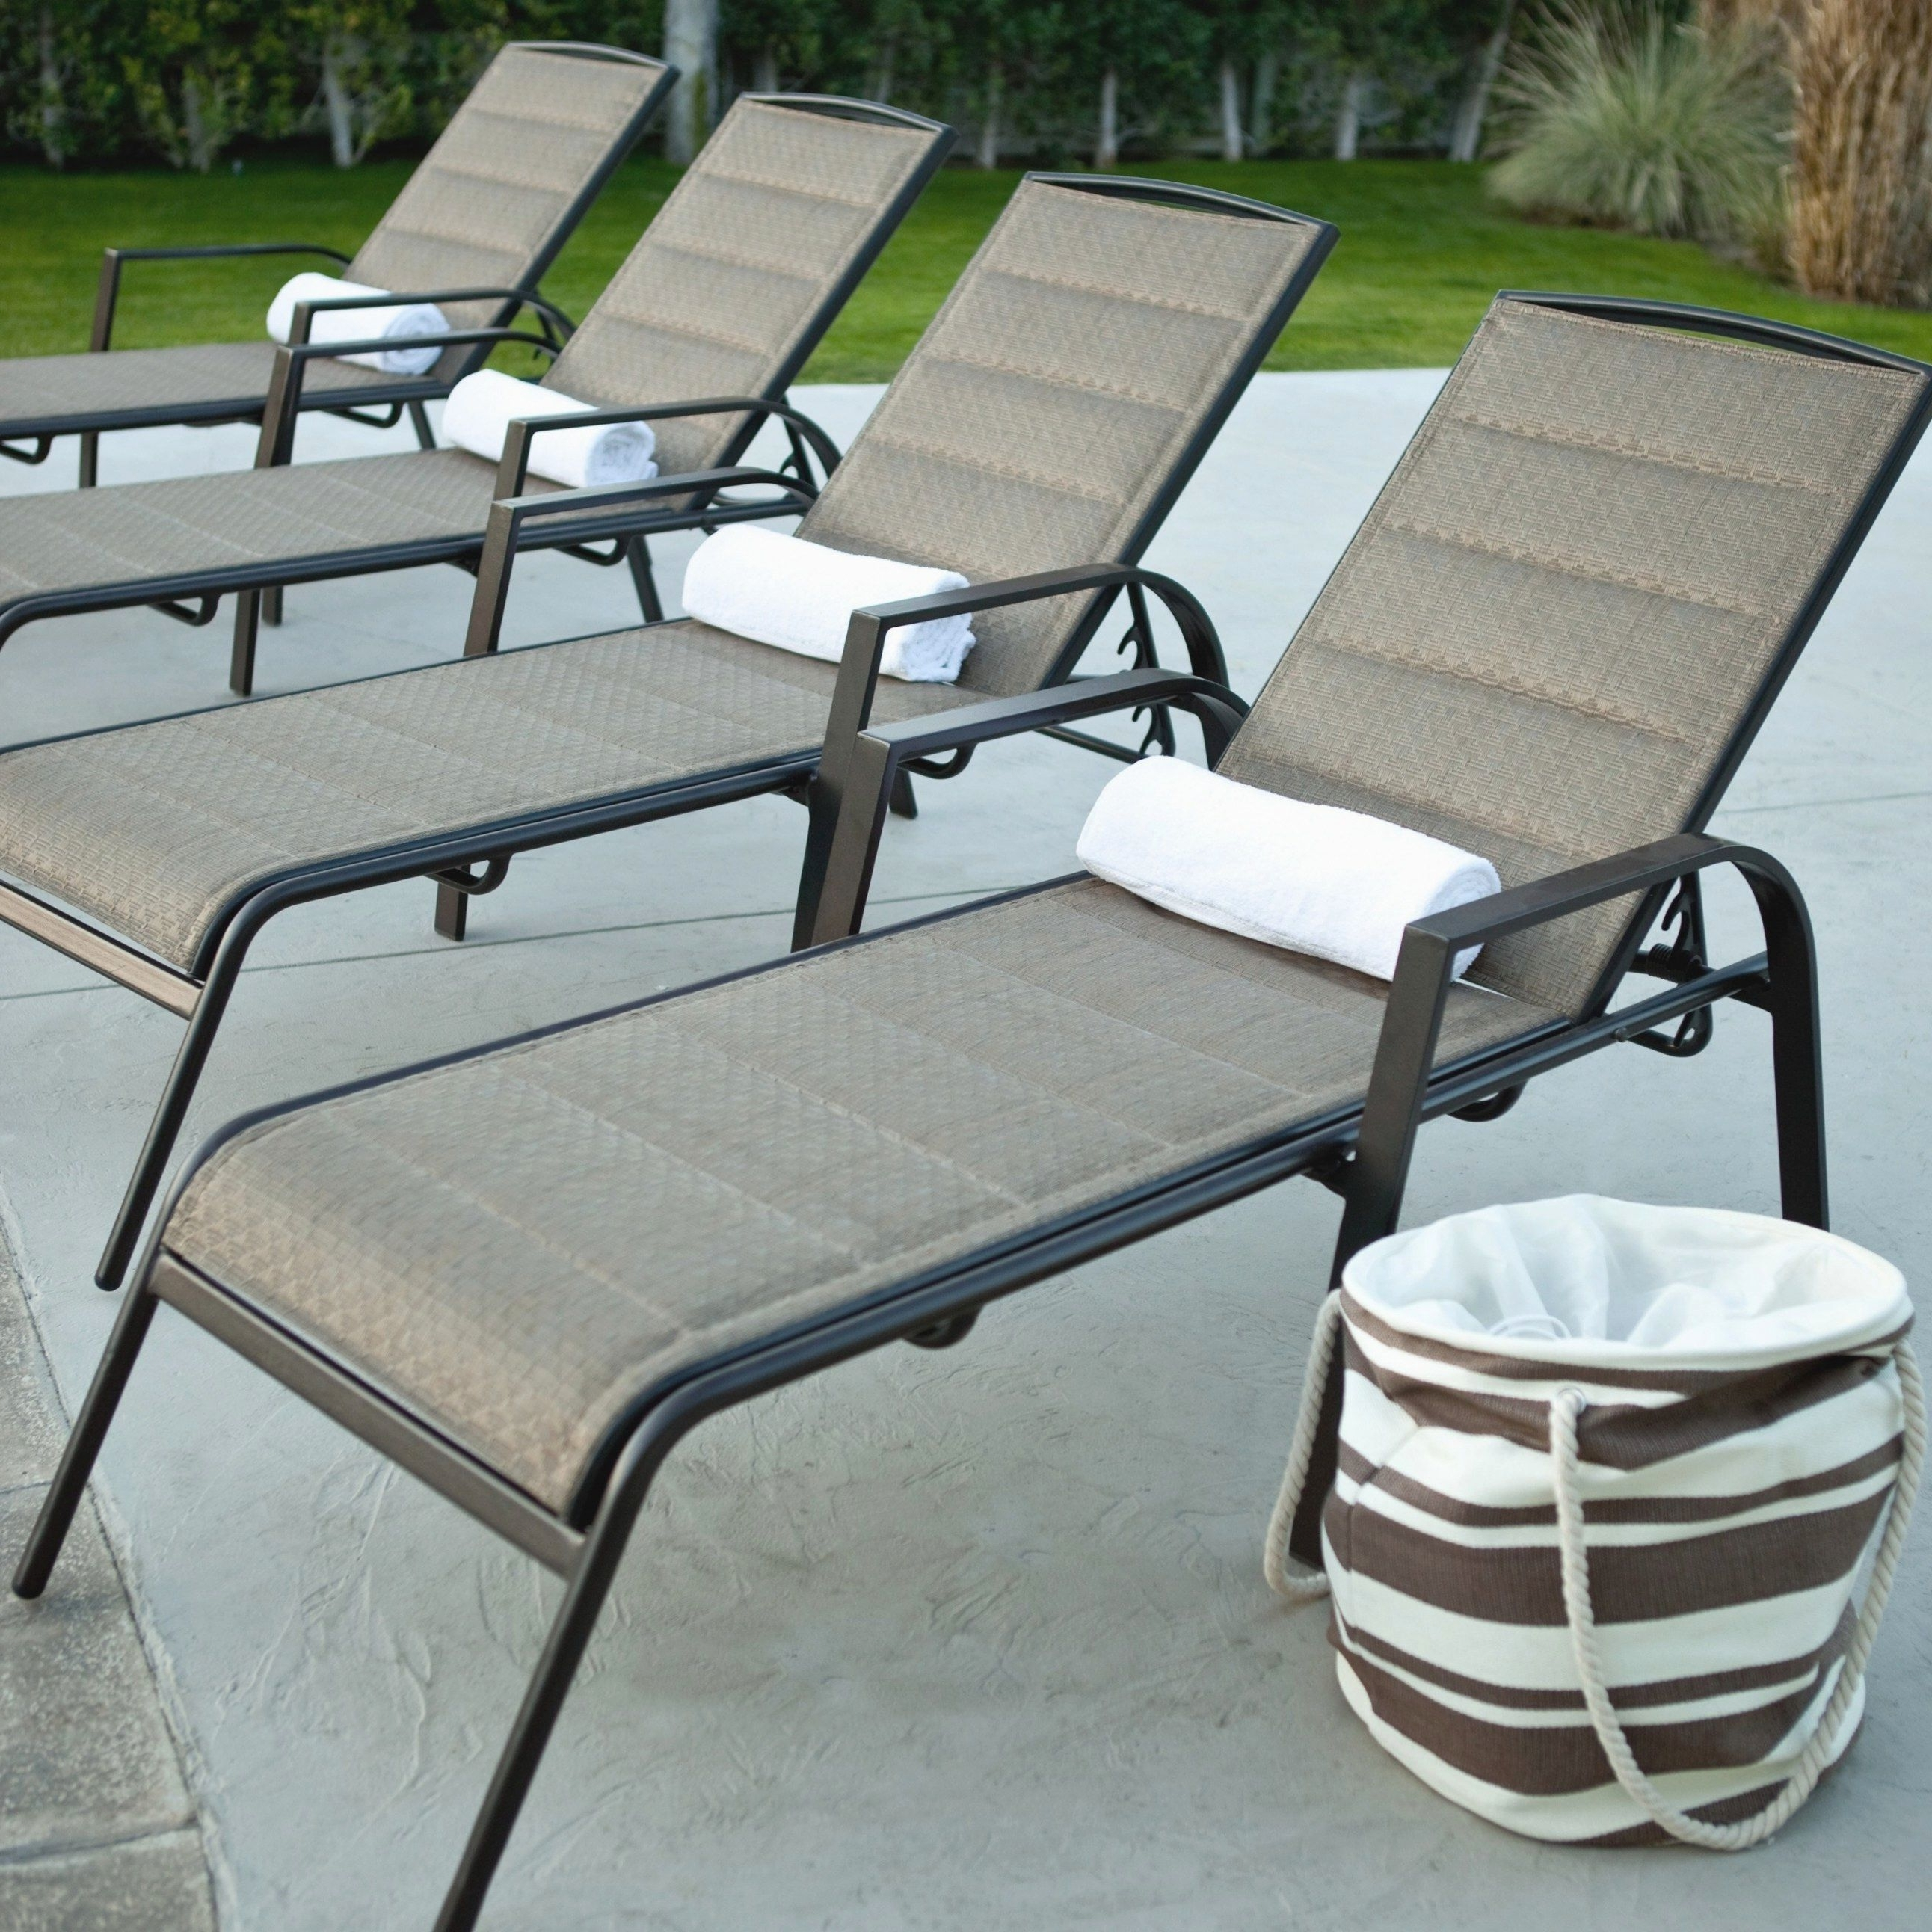 Outdoor Chaise Lounge Chairs Under 100 Modern Fresh Ideas Inside Current Outdoor Chaise Lounge Chairs Under $ (View 4 of 15)